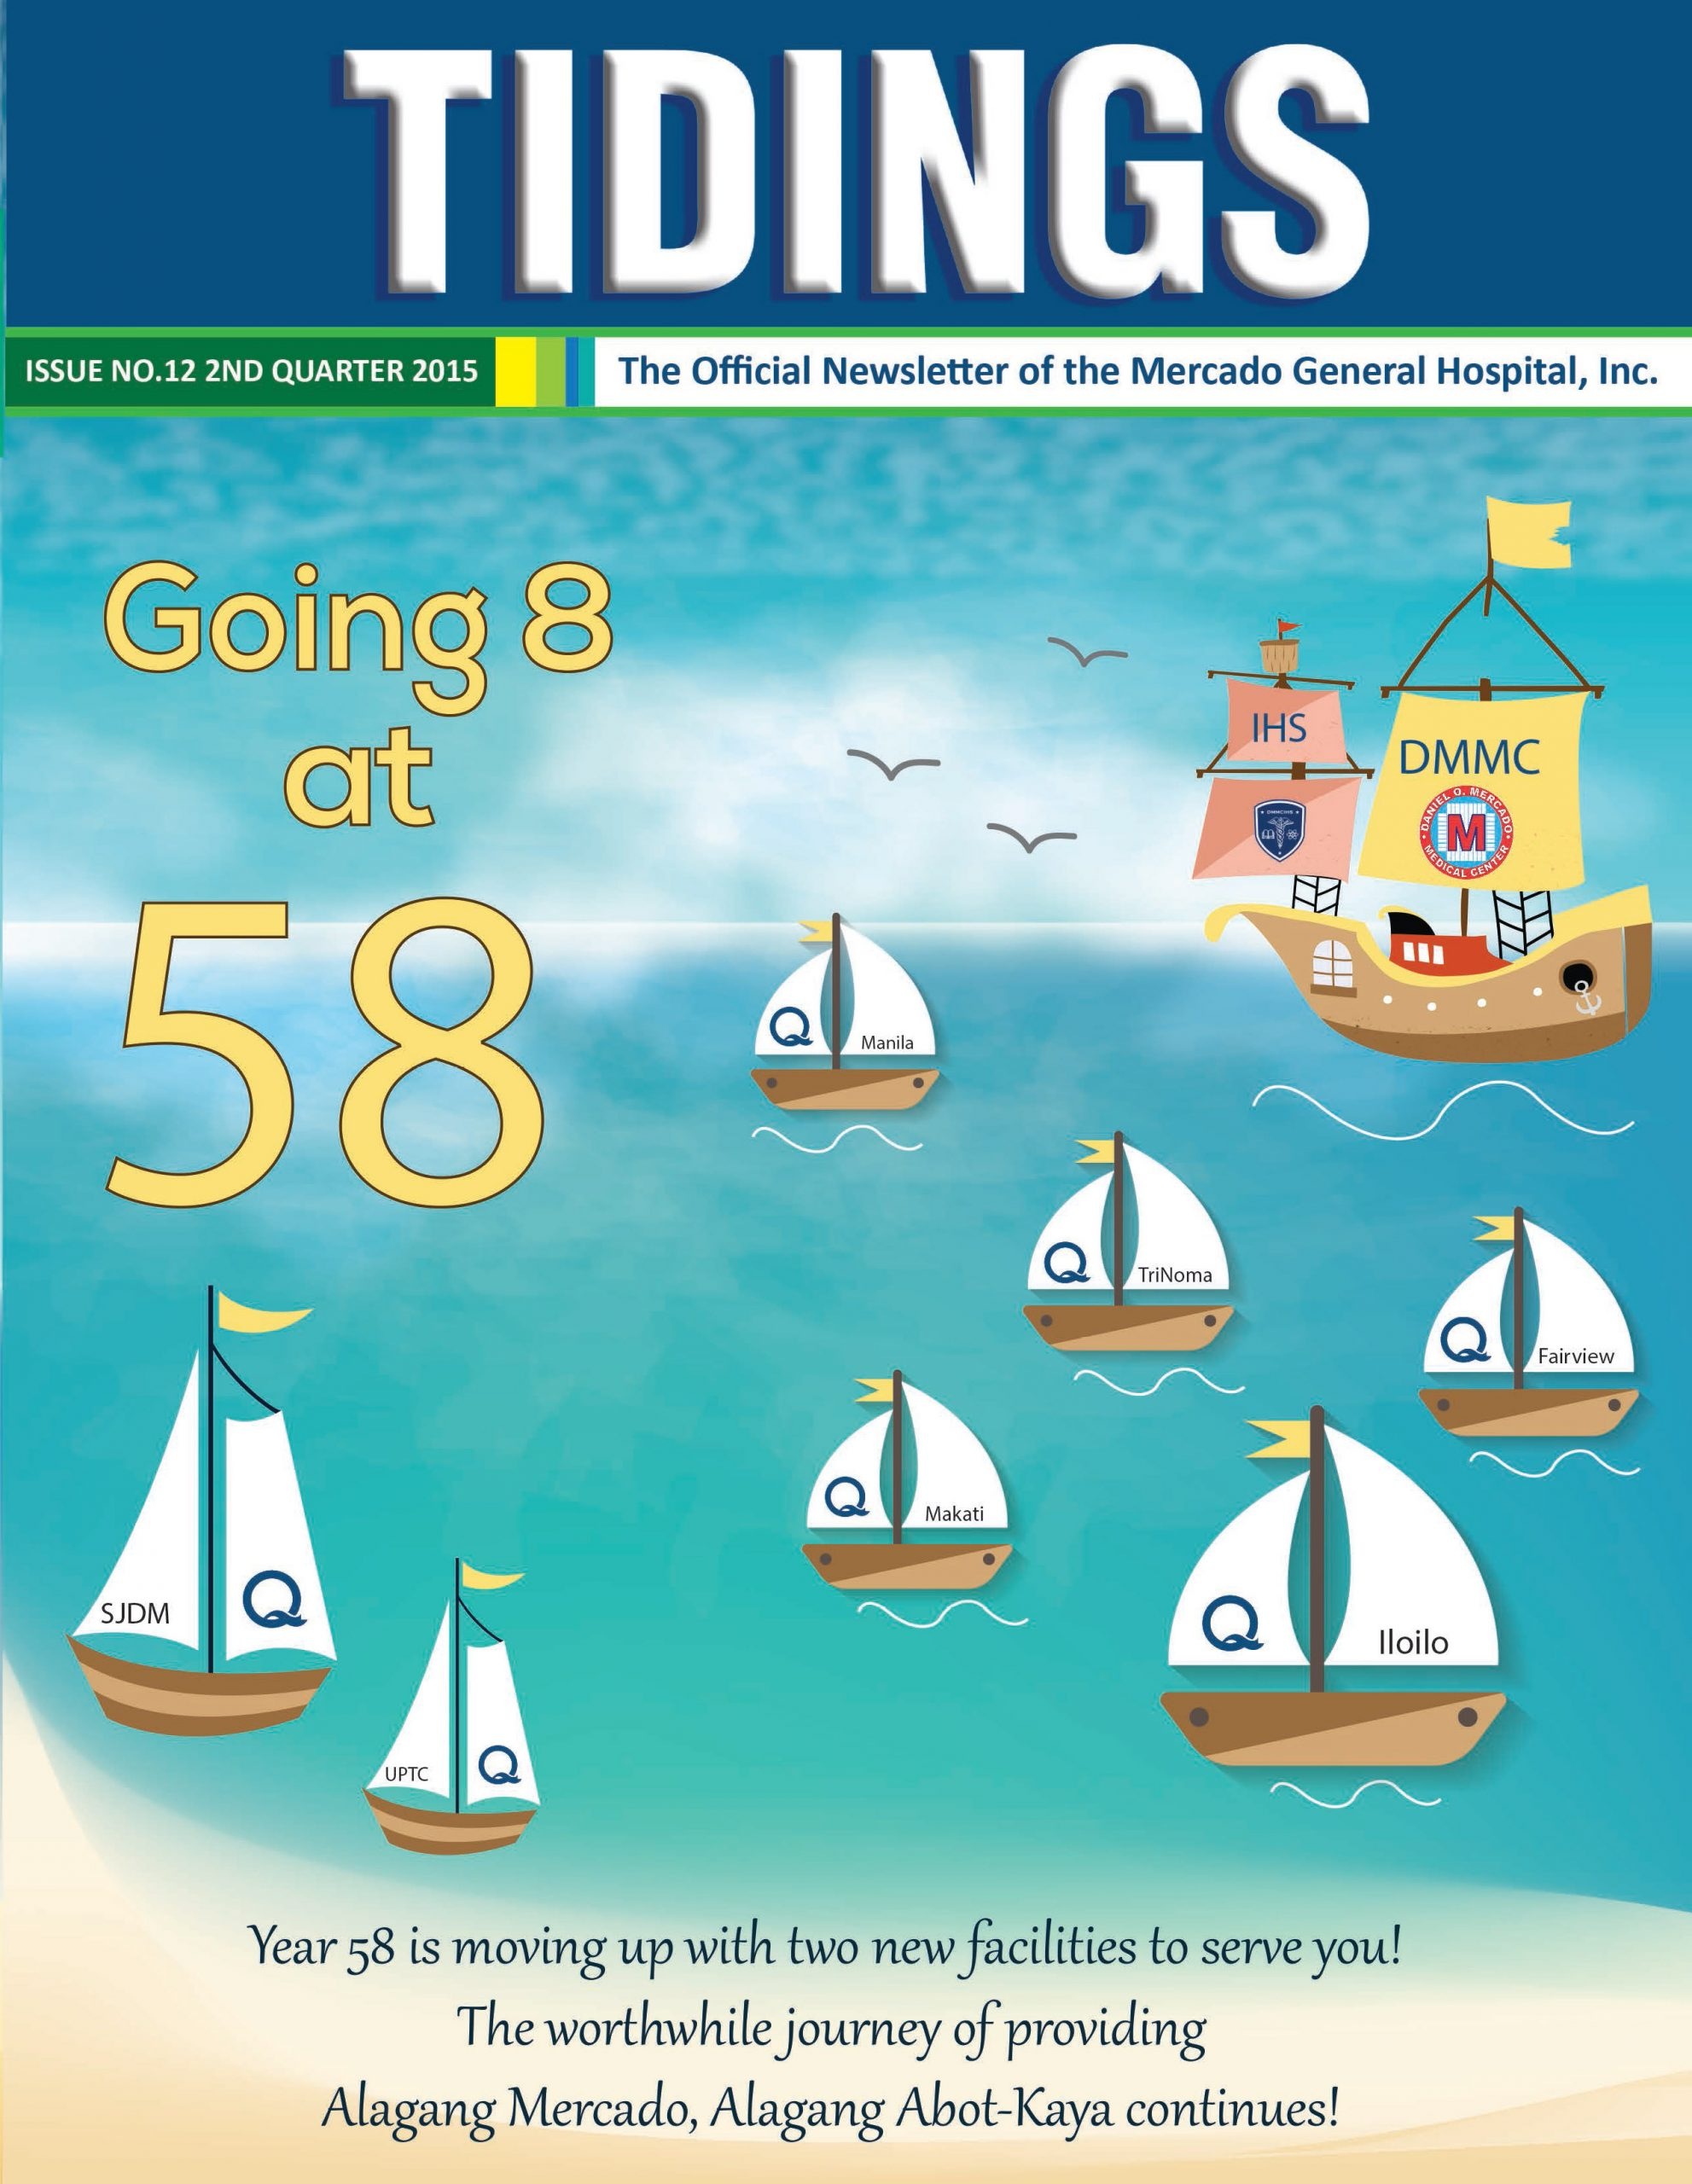 Tidings Newsletter Issue No.12